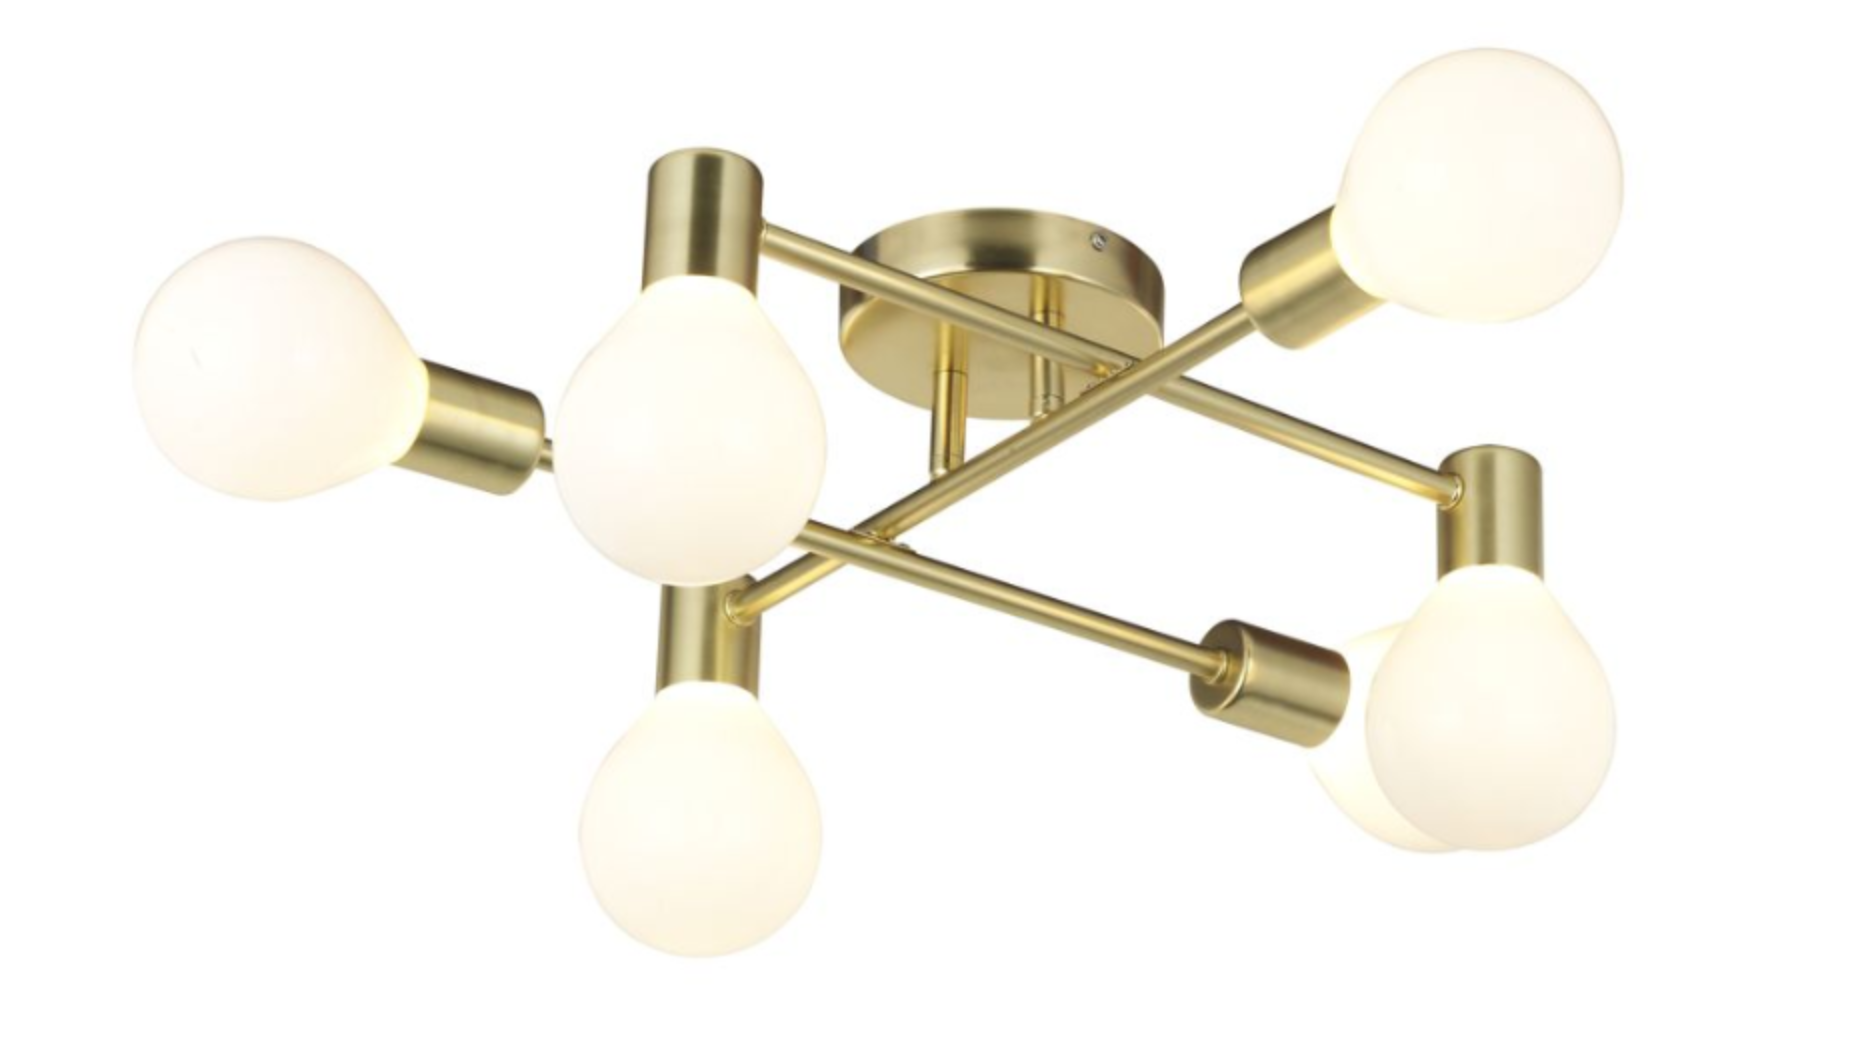 CHANNING BRUSHED GOLD MODERN CEILING LIGHT    £72  This is an alternative option to the living room light which I thought about before buying the chandelier. This was out of stock at the time which made the decision for me!